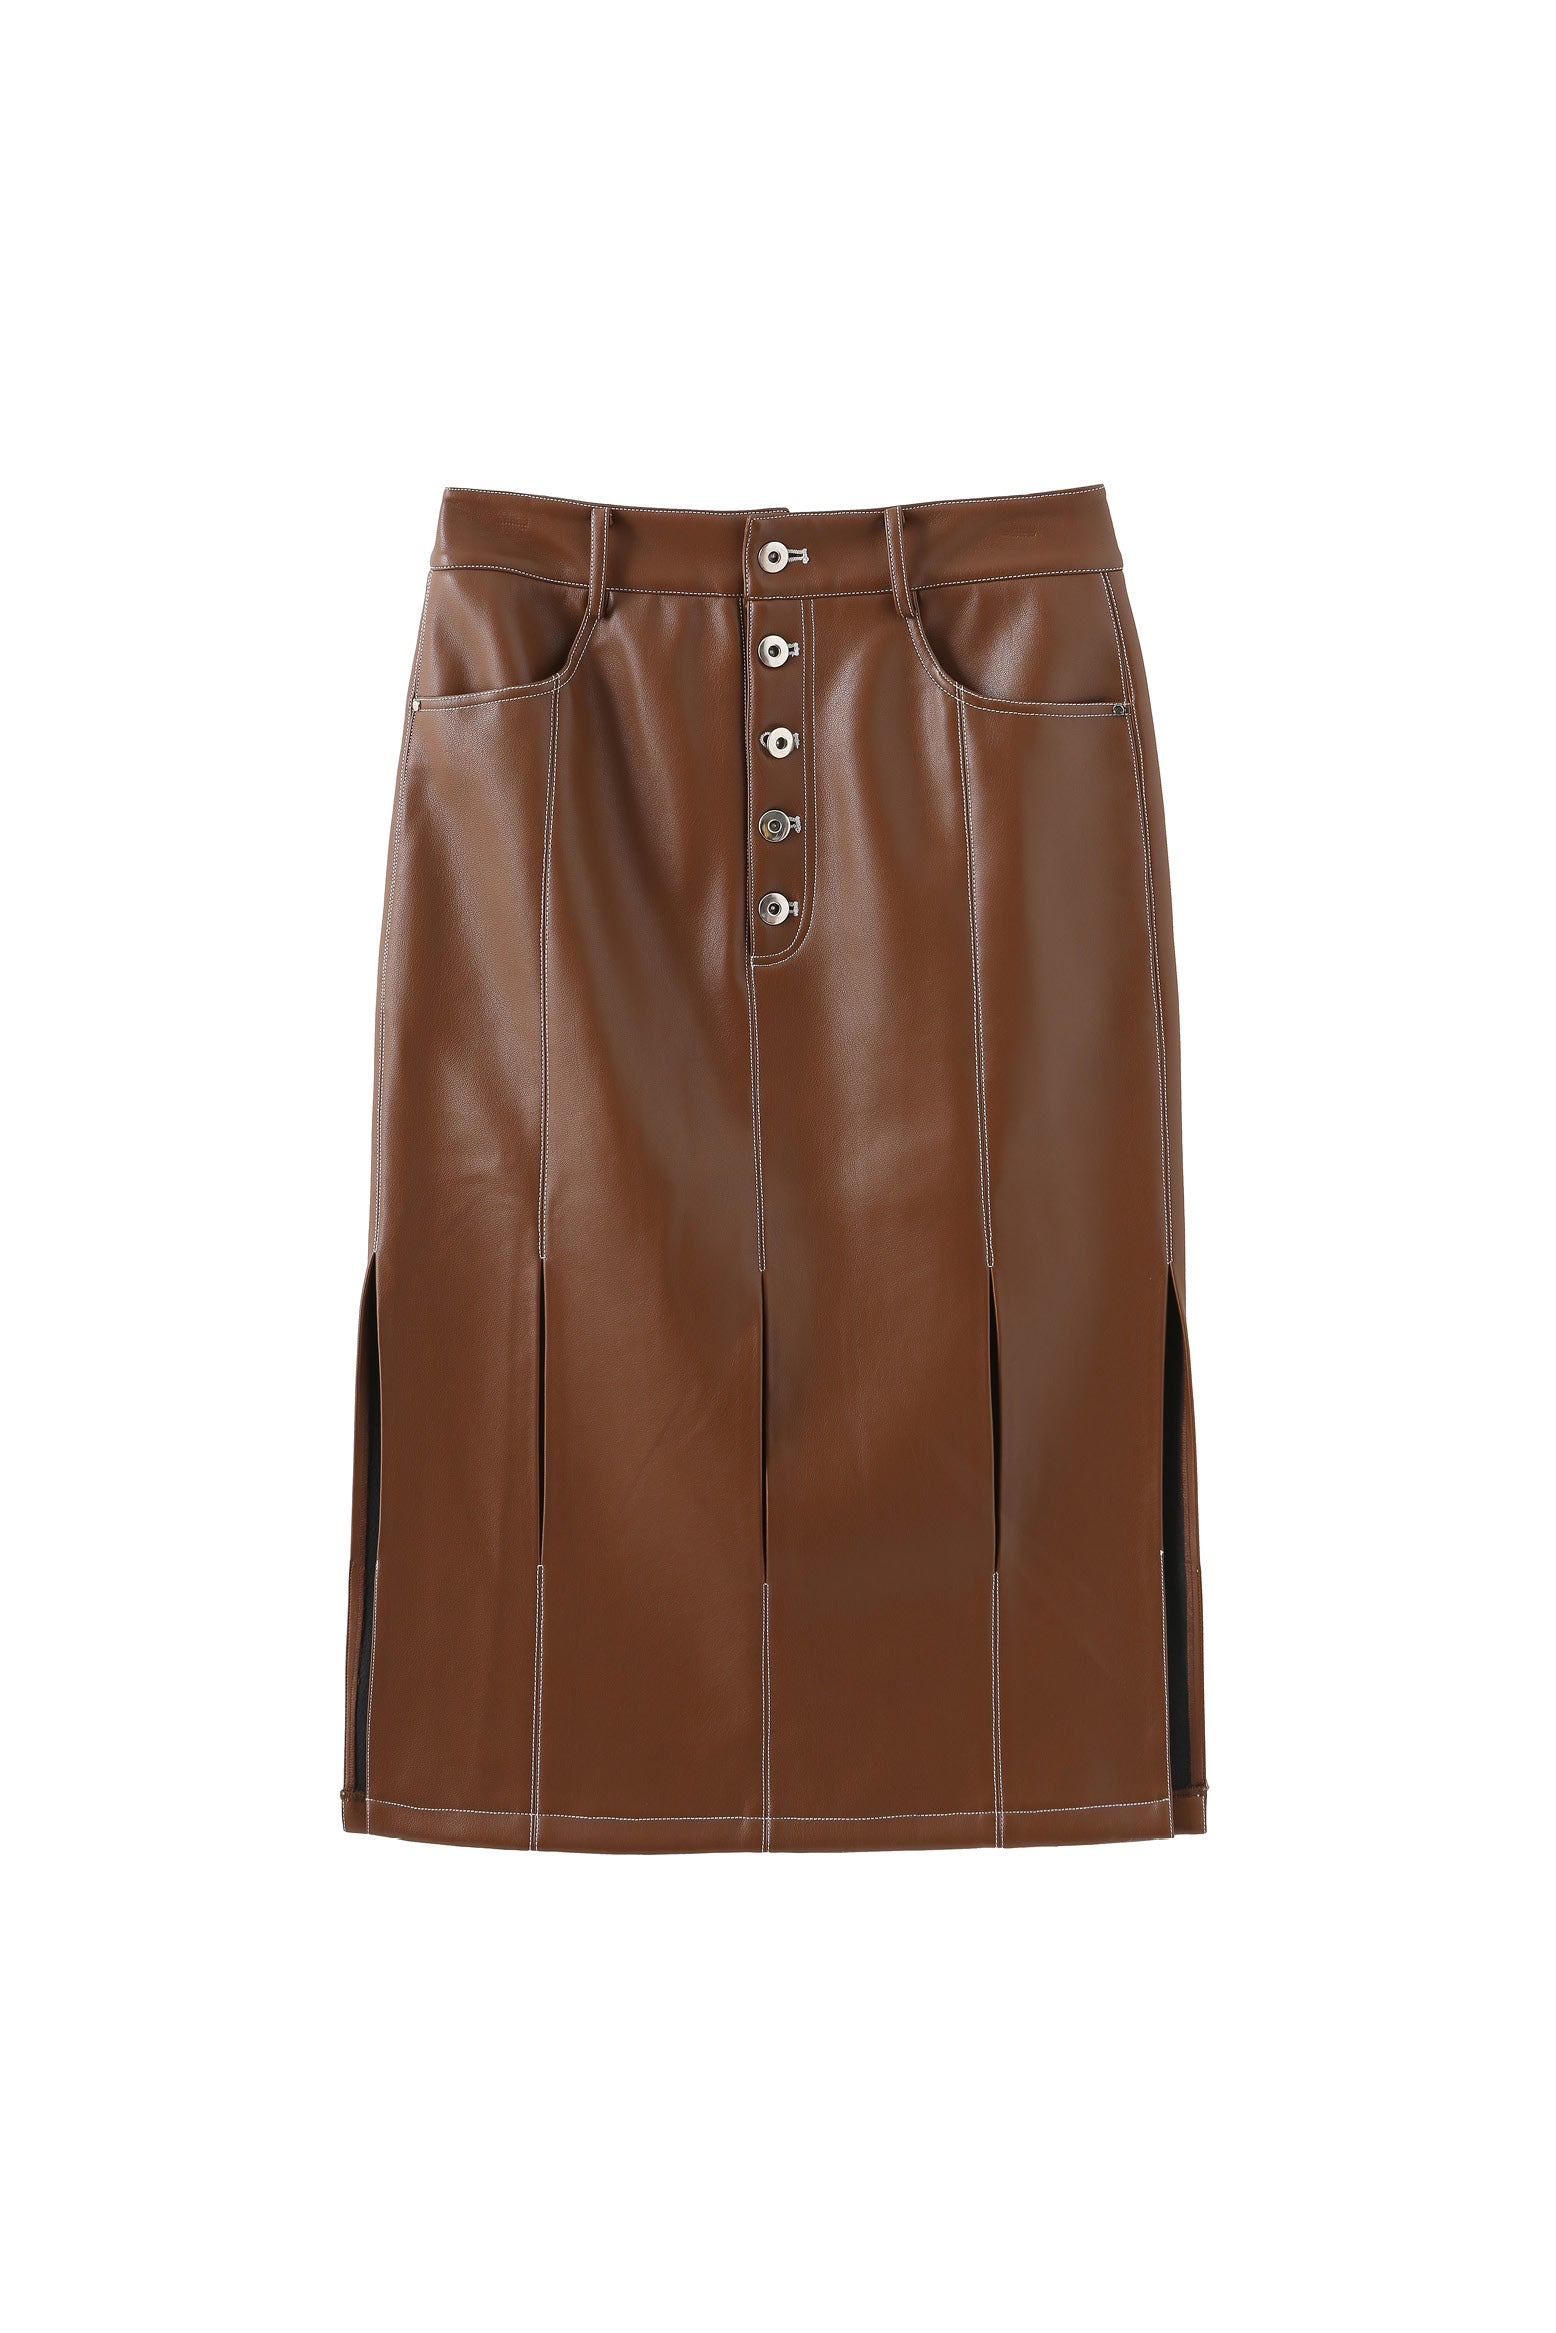 Jagger Leather-free skirt in Nutella